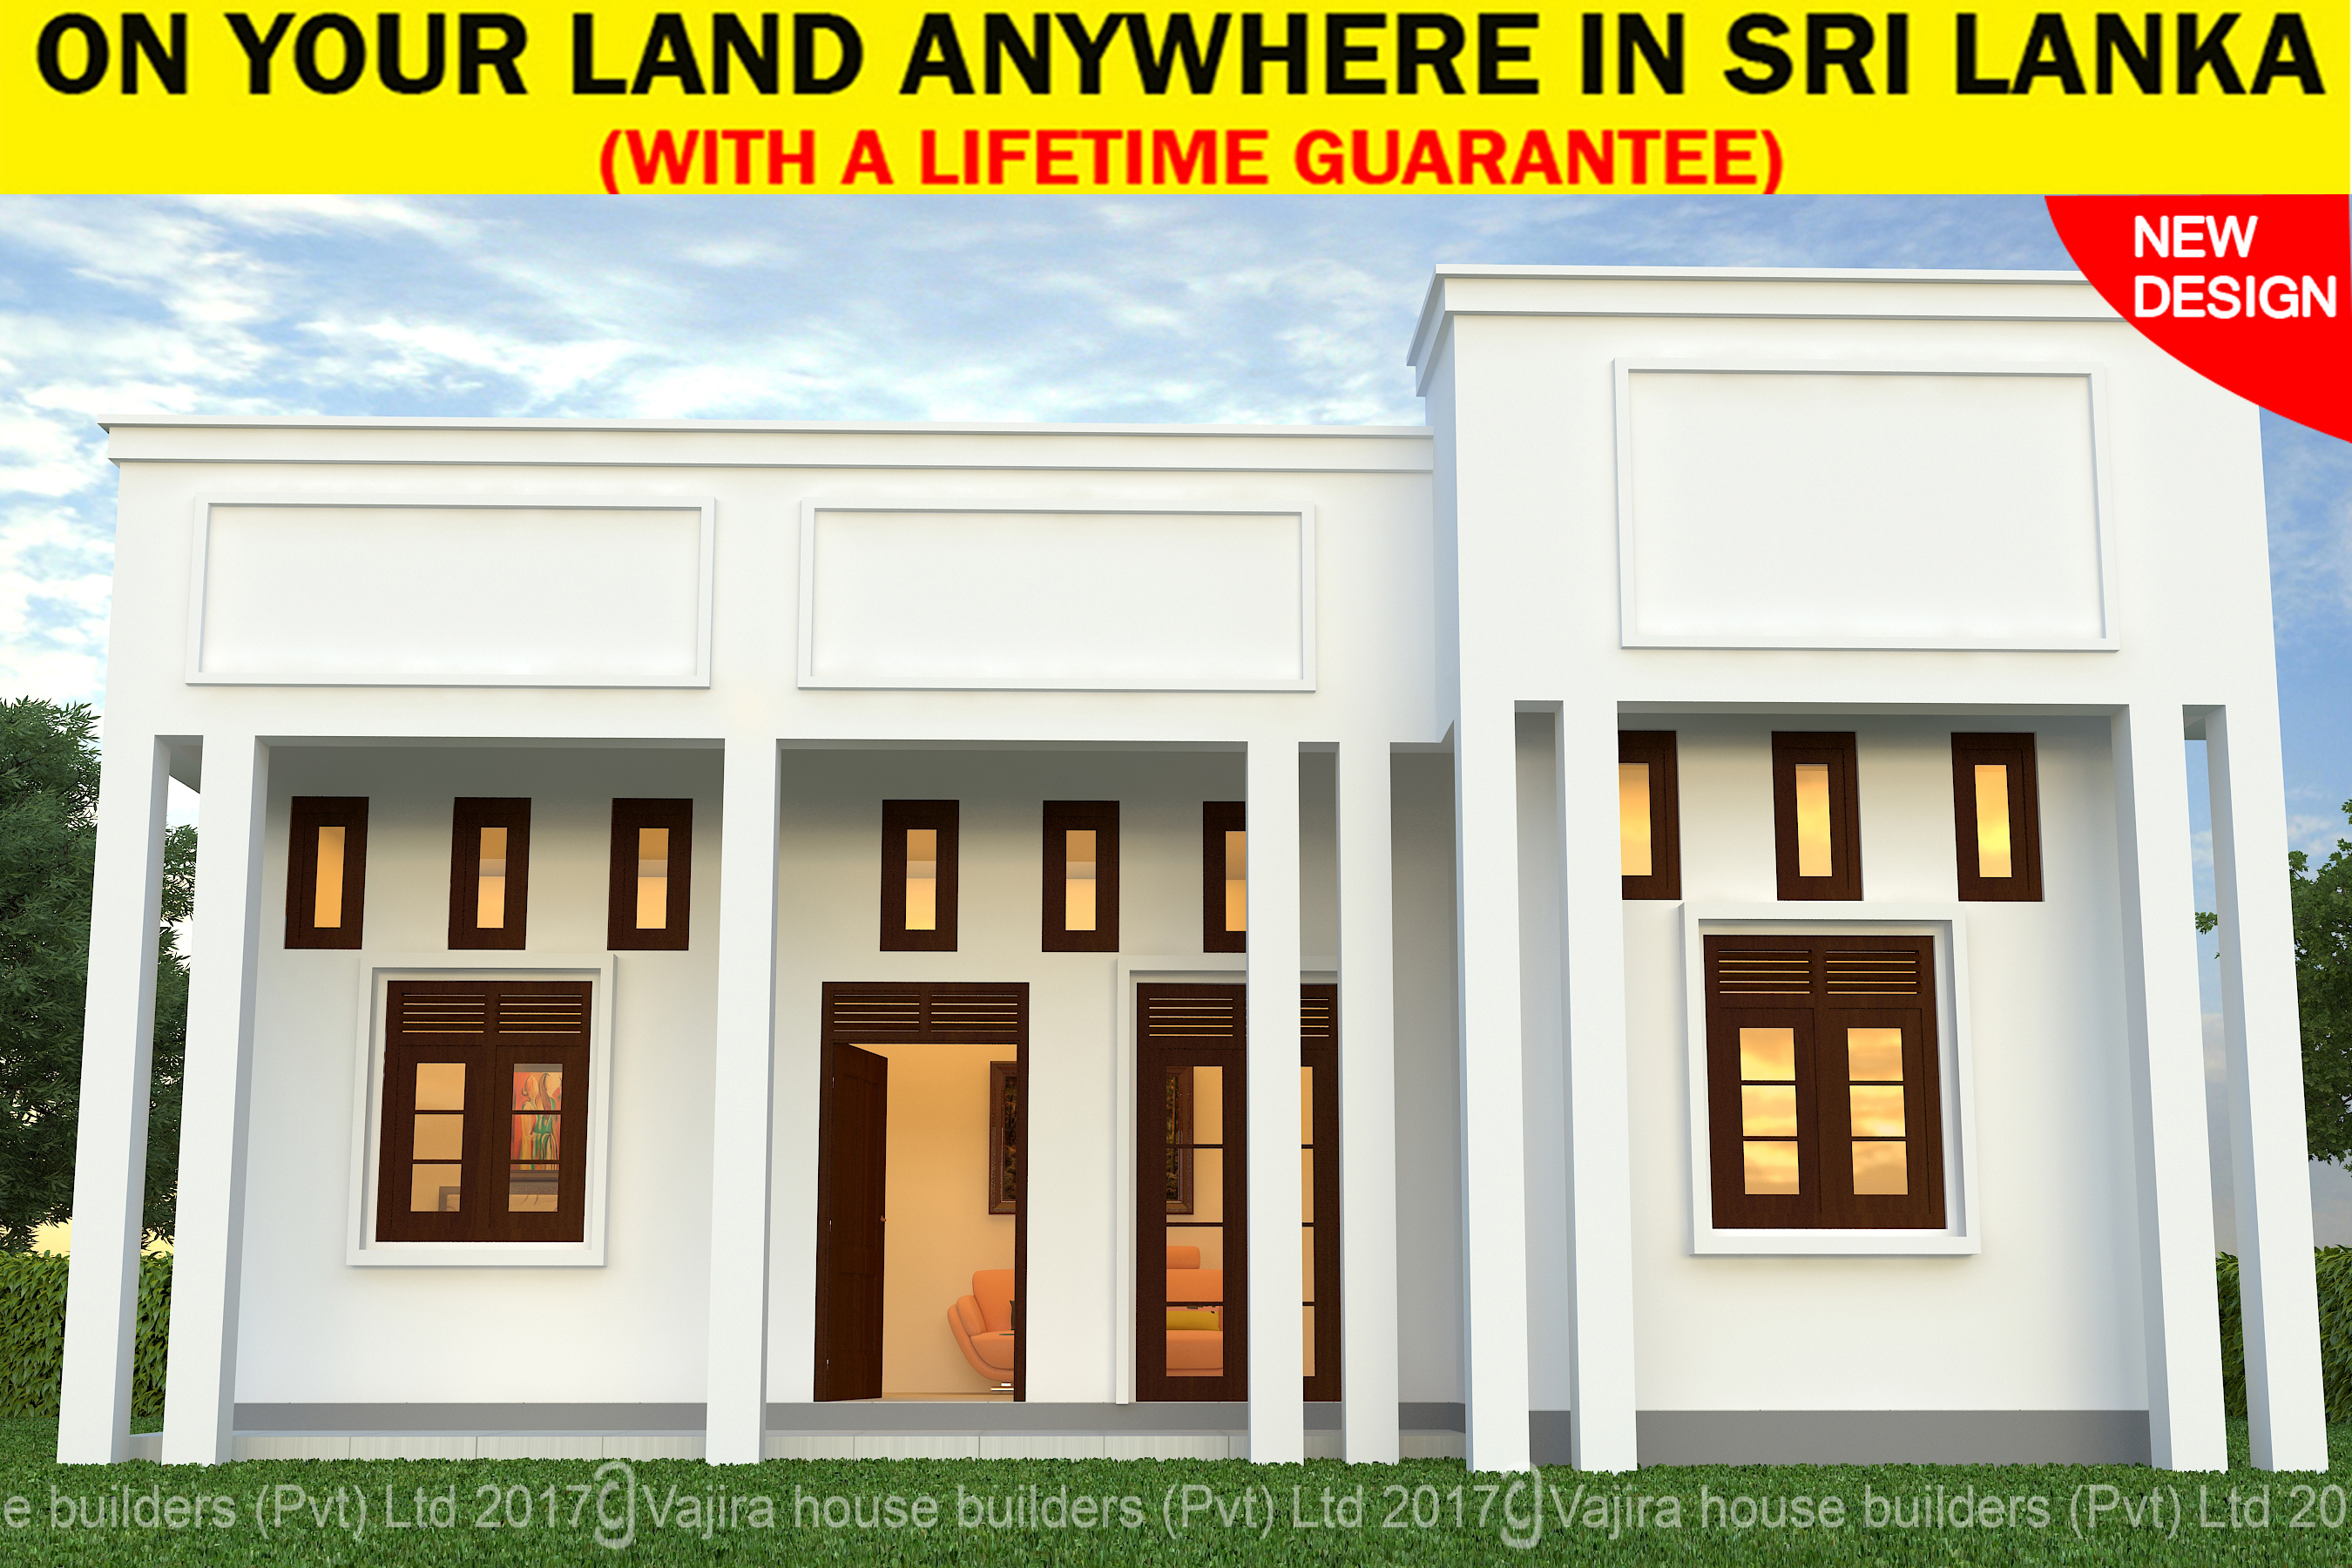 Low budget house plans sri lanka for House window designs in sri lanka